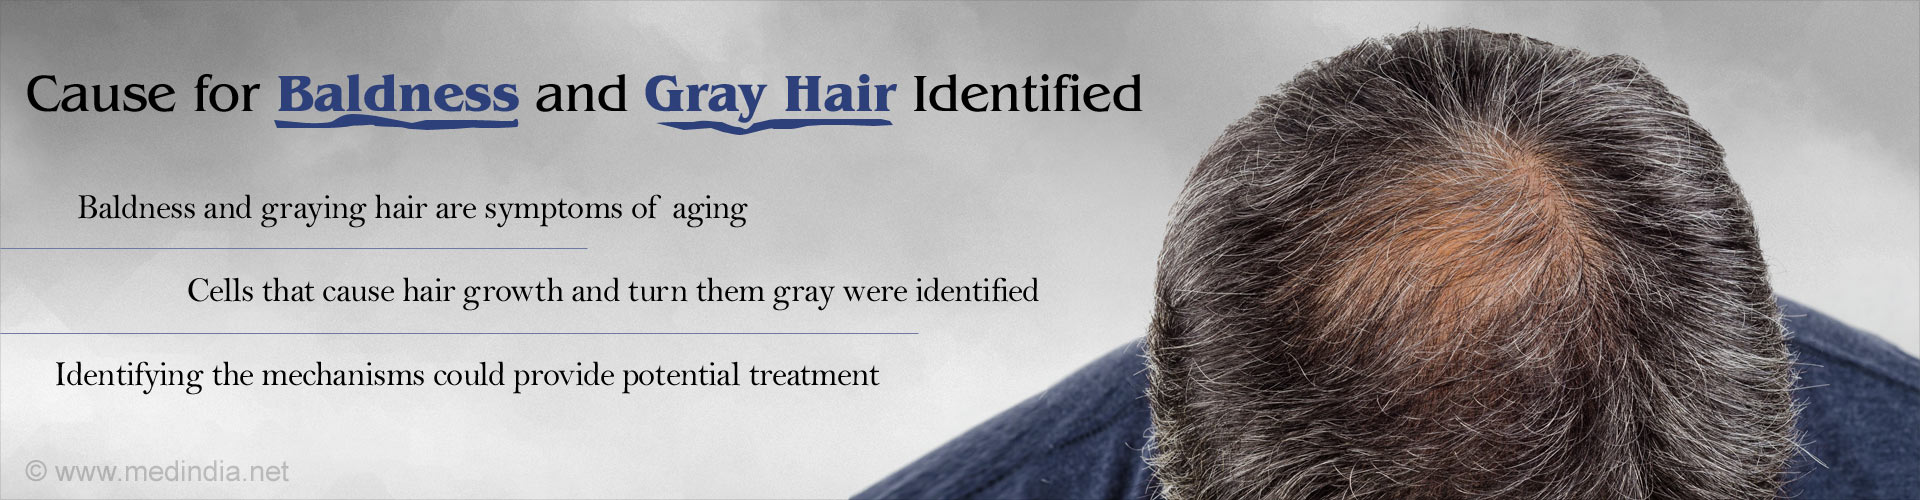 What Causes Baldness and Gray Hair